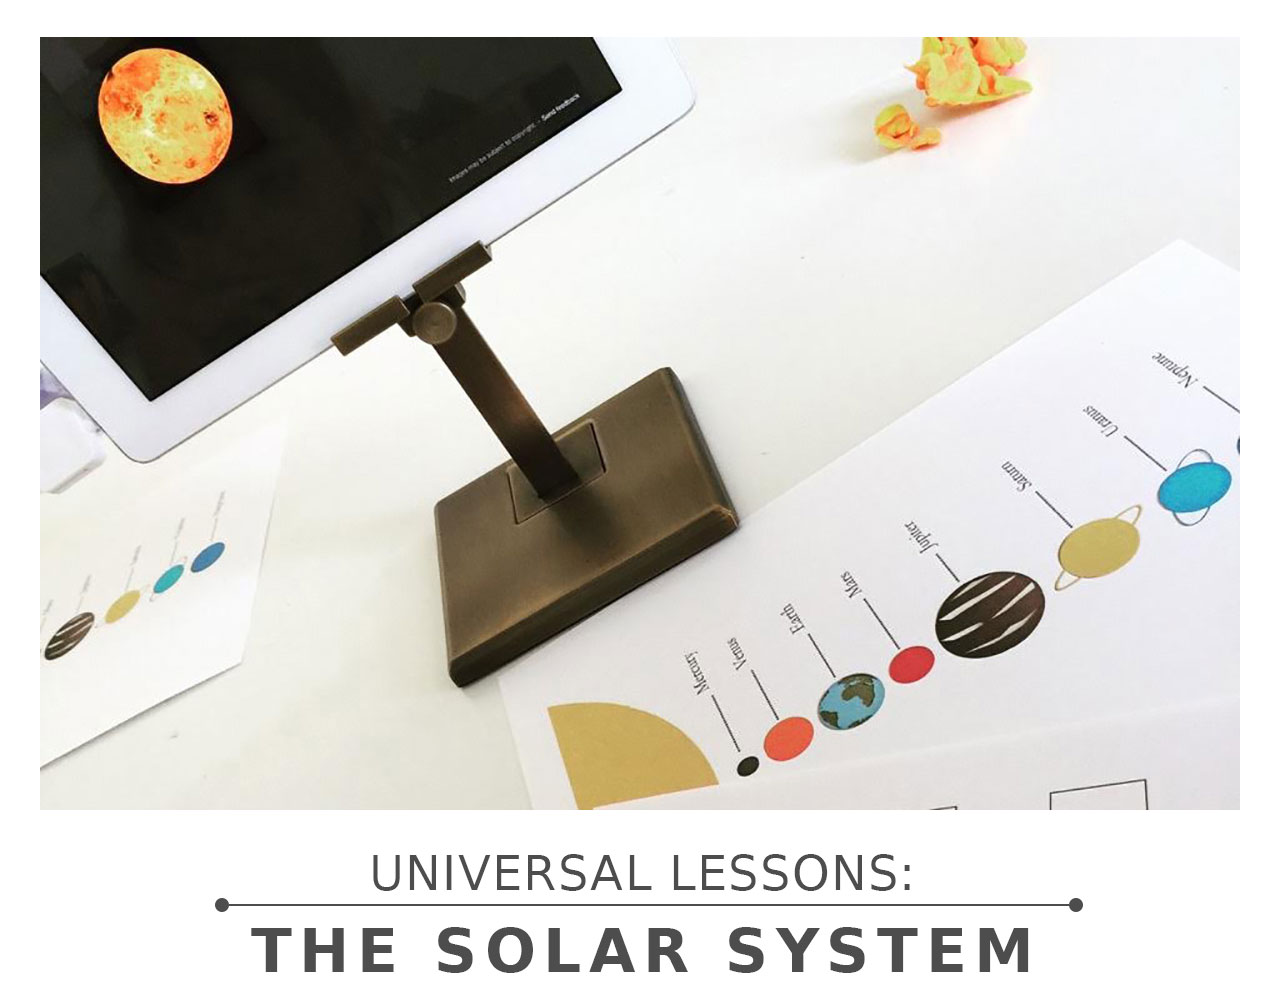 Universal Lessons: The Solar System